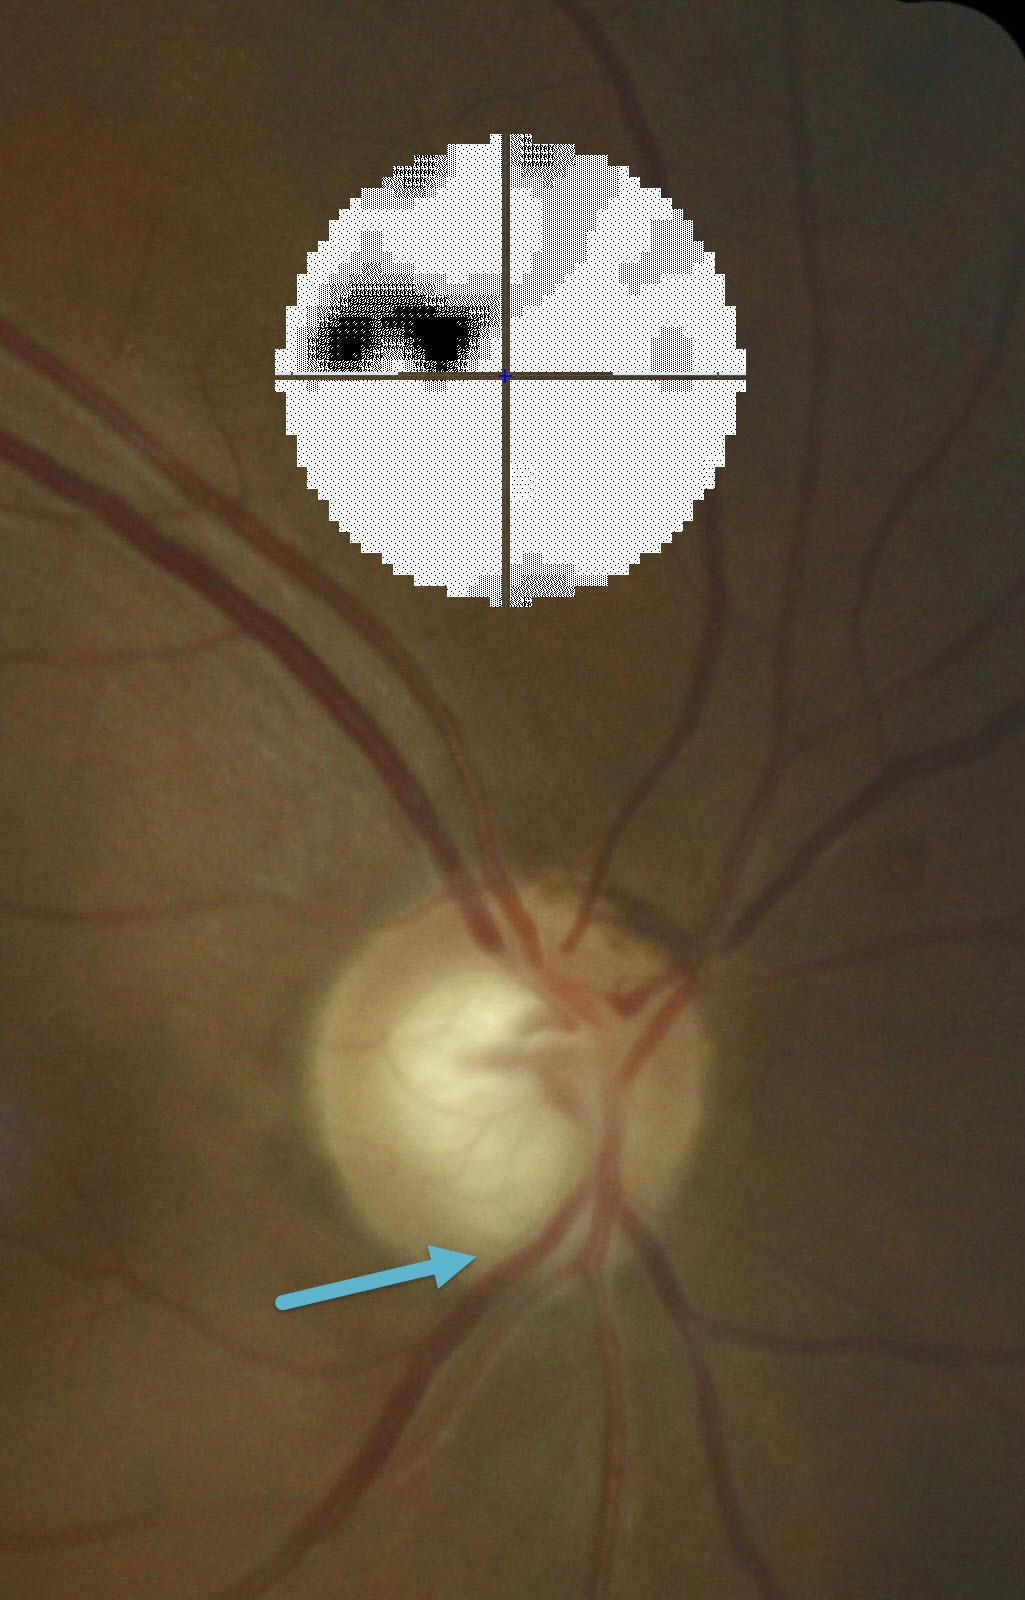 The optic nerve of a person with glaucoma. The blue arrow shows the damaged area of the optic nerve. The black blotches in the graphic shows the vision loss in the top half of this person's sight.